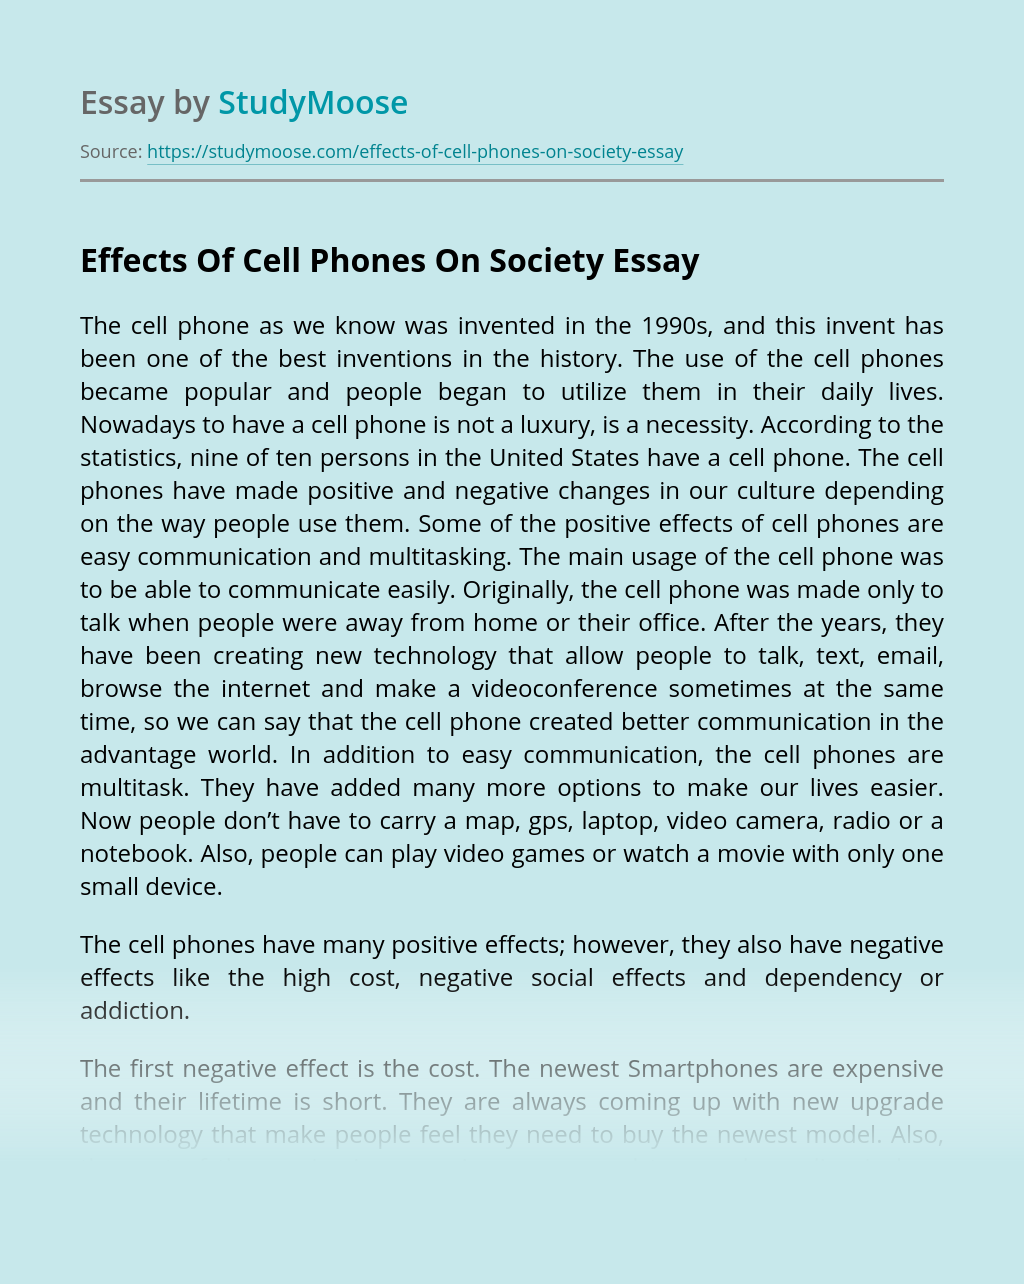 Effects Of Cell Phones On Society